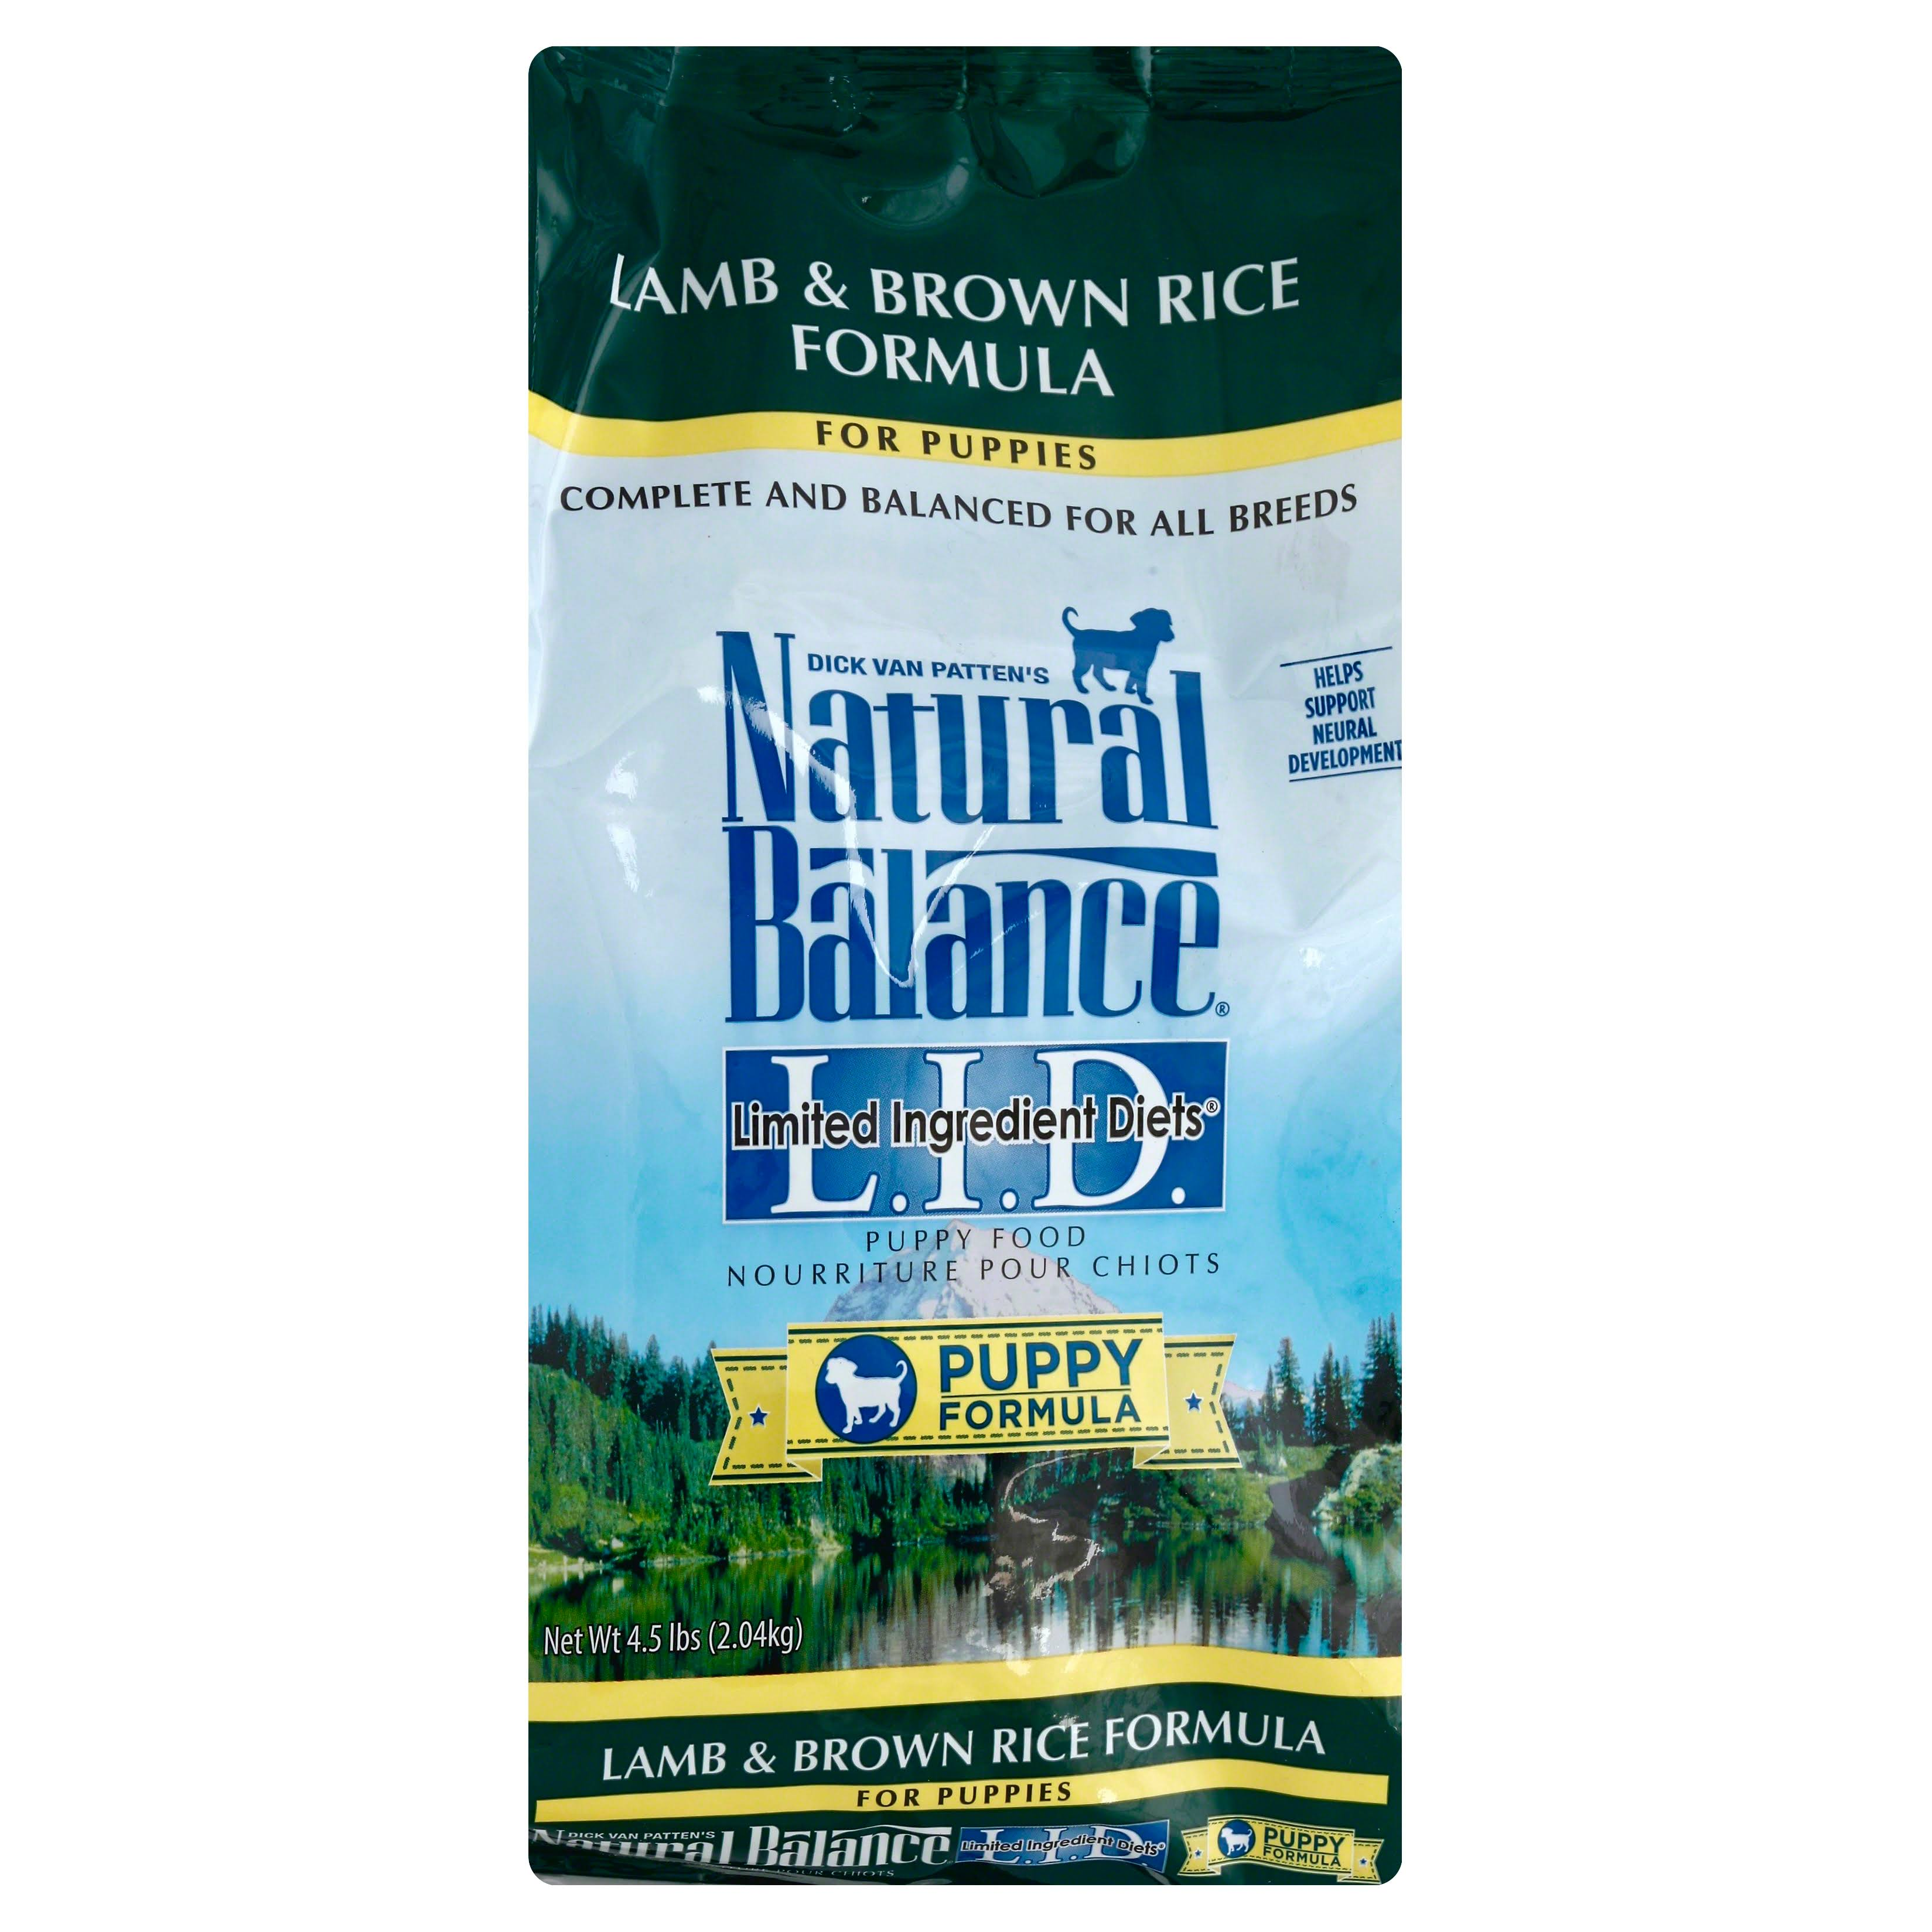 Natural Balance Limited Ingredient Diets Puppy Food - Lamb and Brown Rice Formula, 4.5lbs